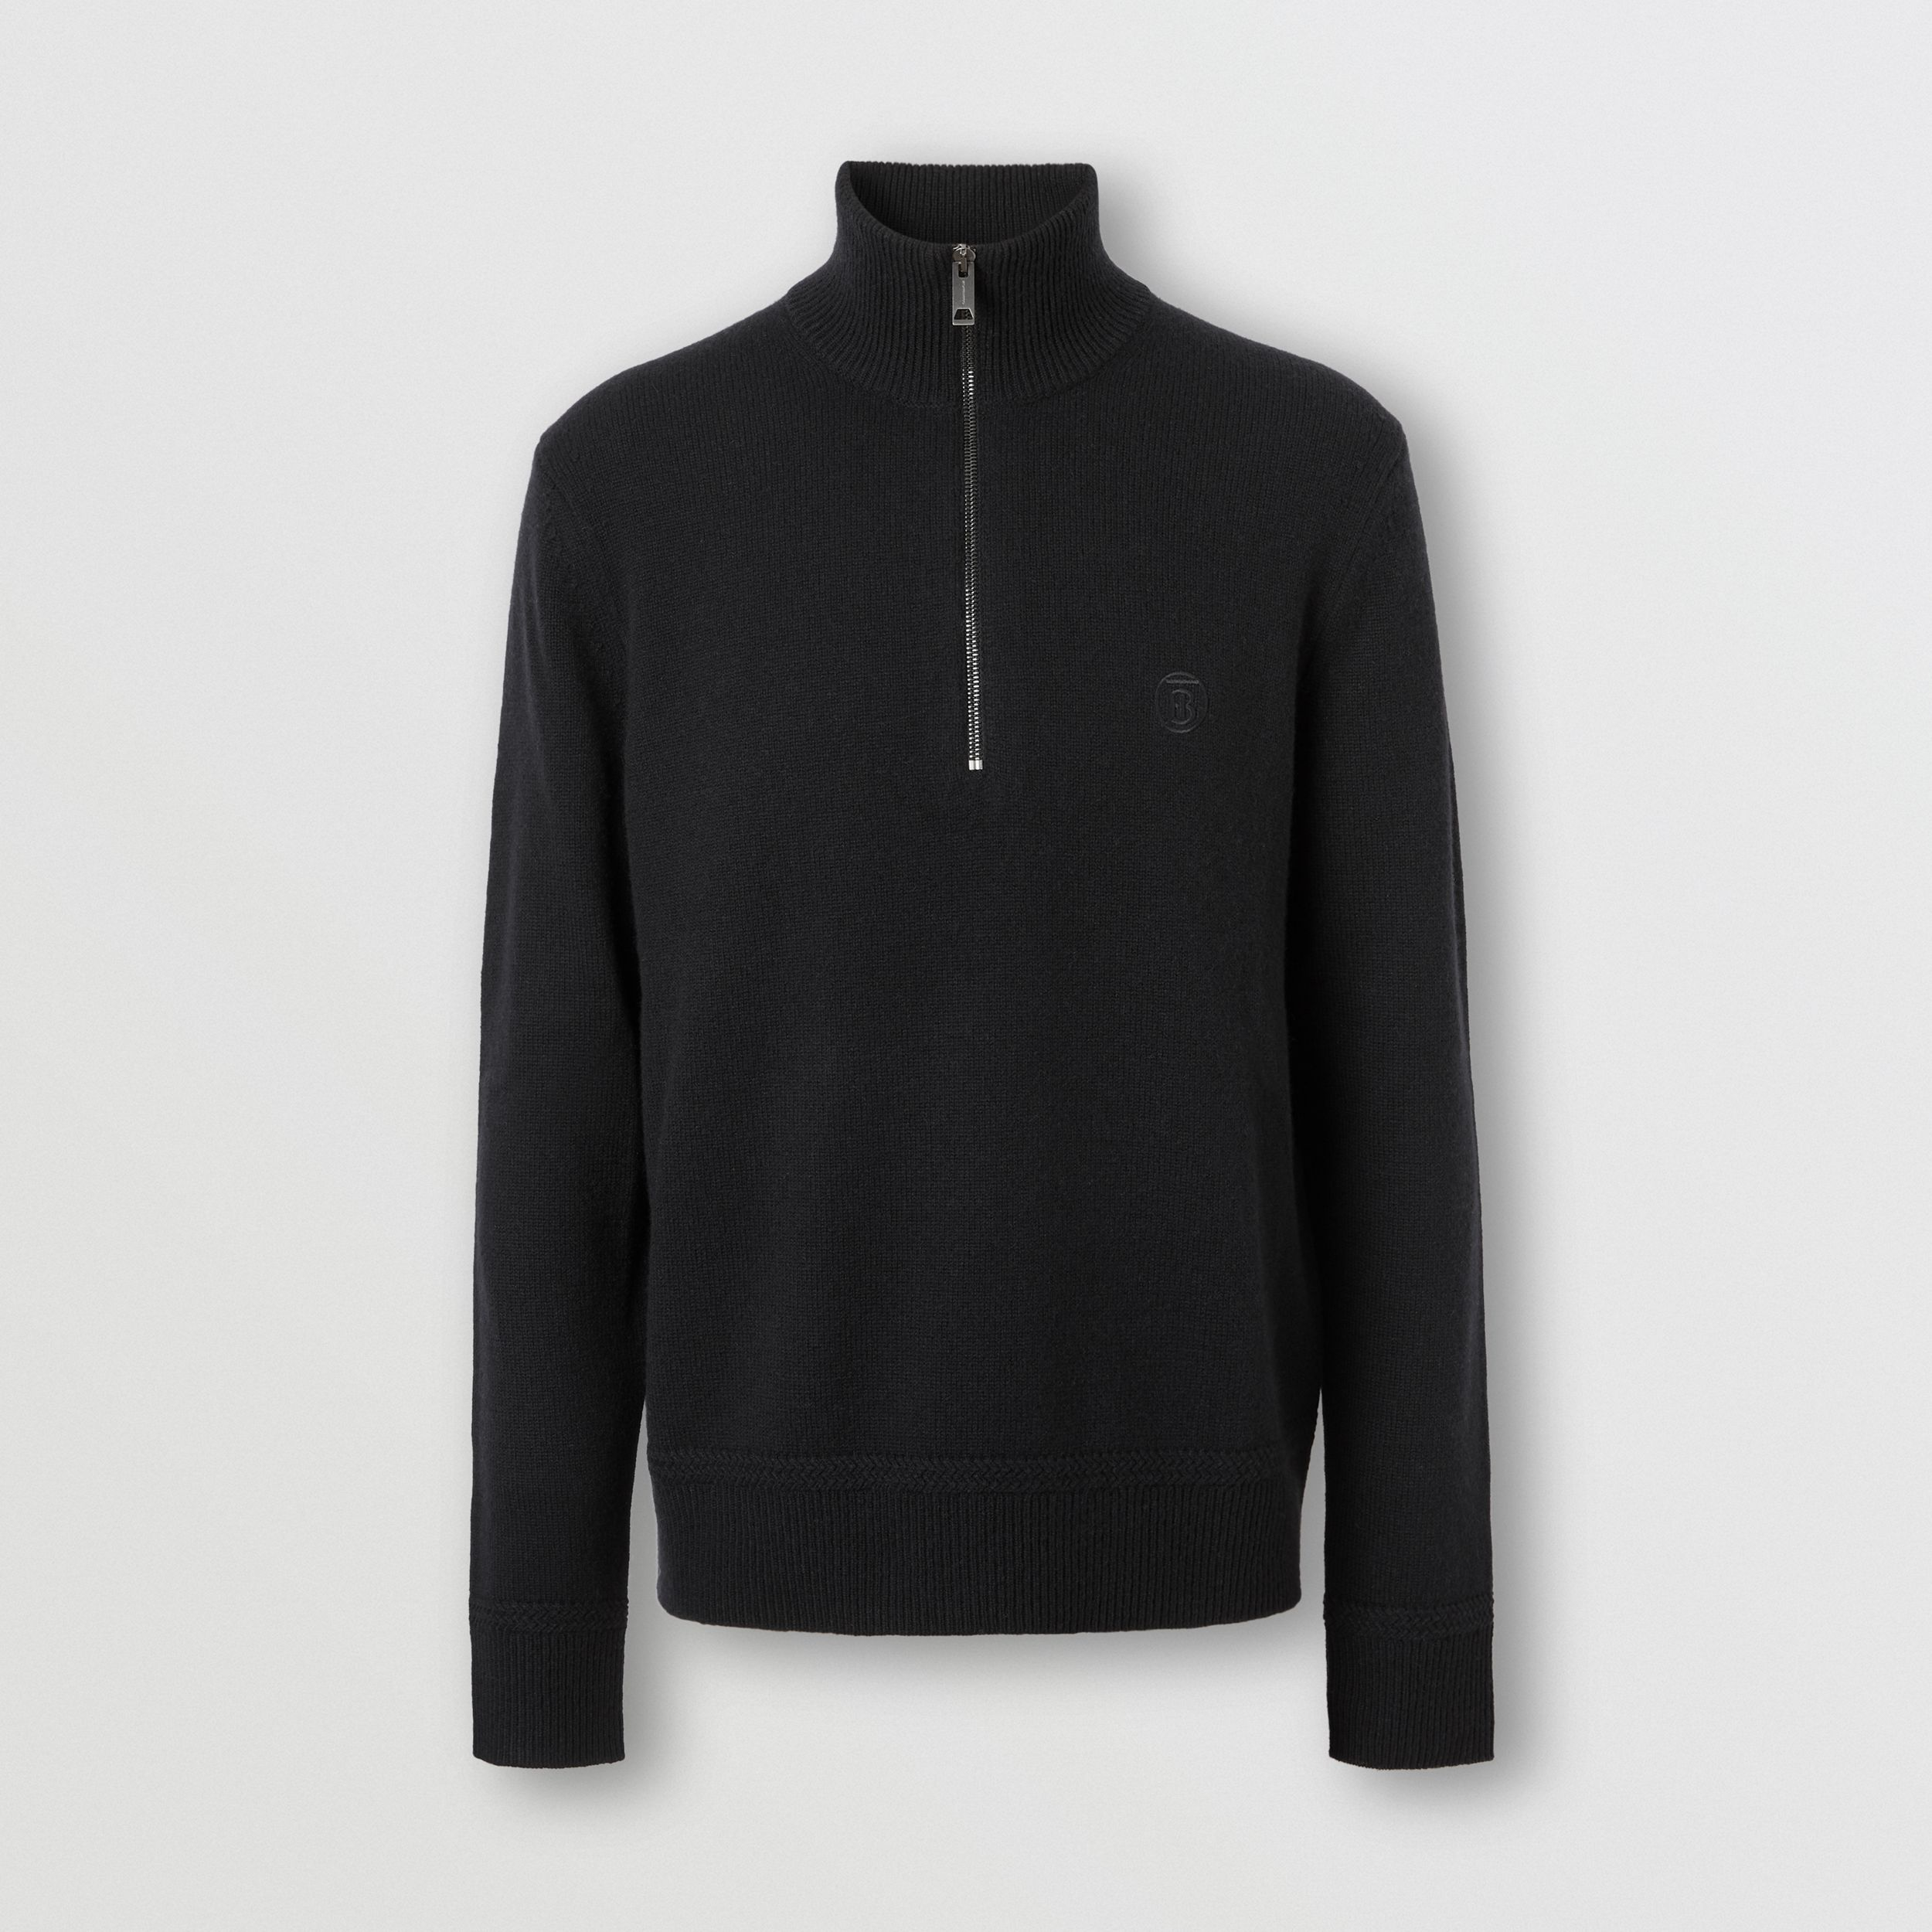 Monogram Motif Cashmere Funnel Neck Sweater in Black - Men | Burberry - 4